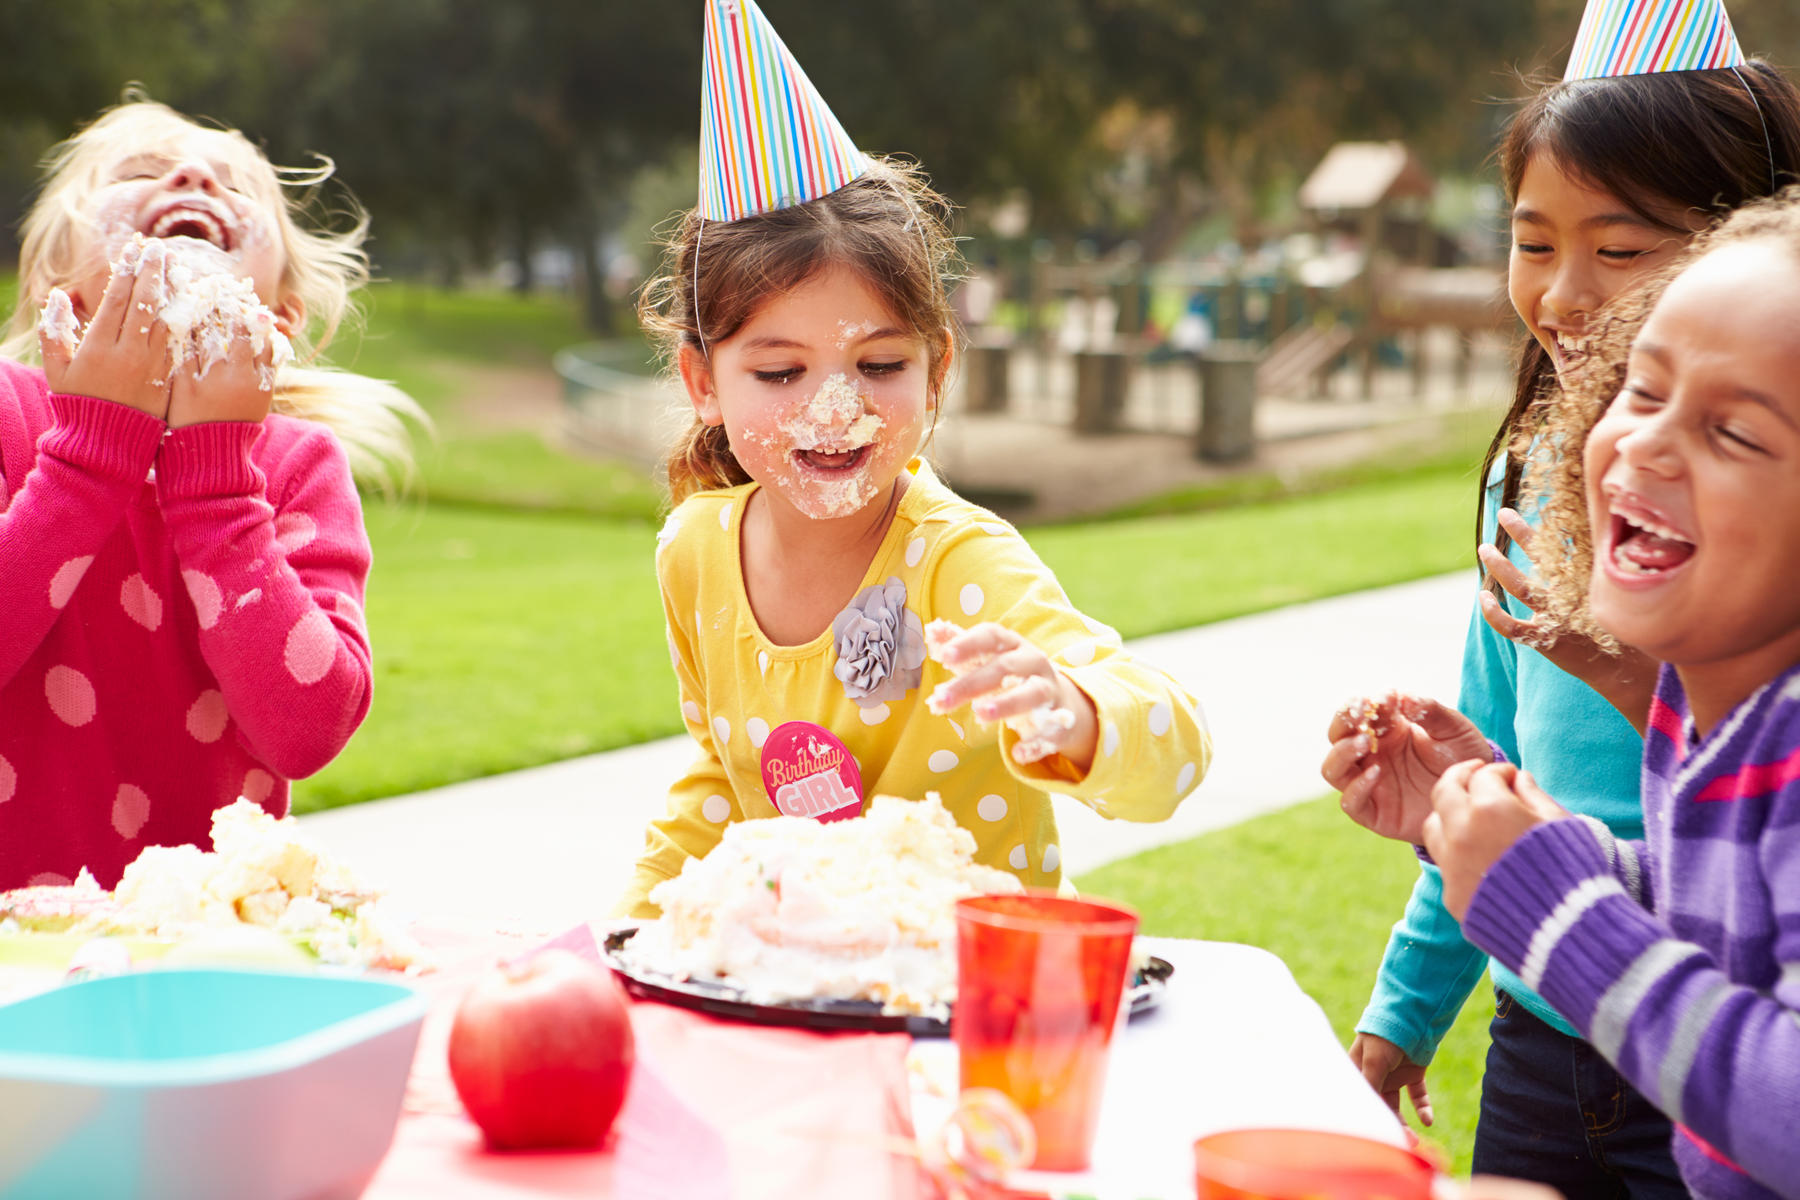 Spring Birthday Party Ideas: Add Even More Sunshine to Your Kid's Day